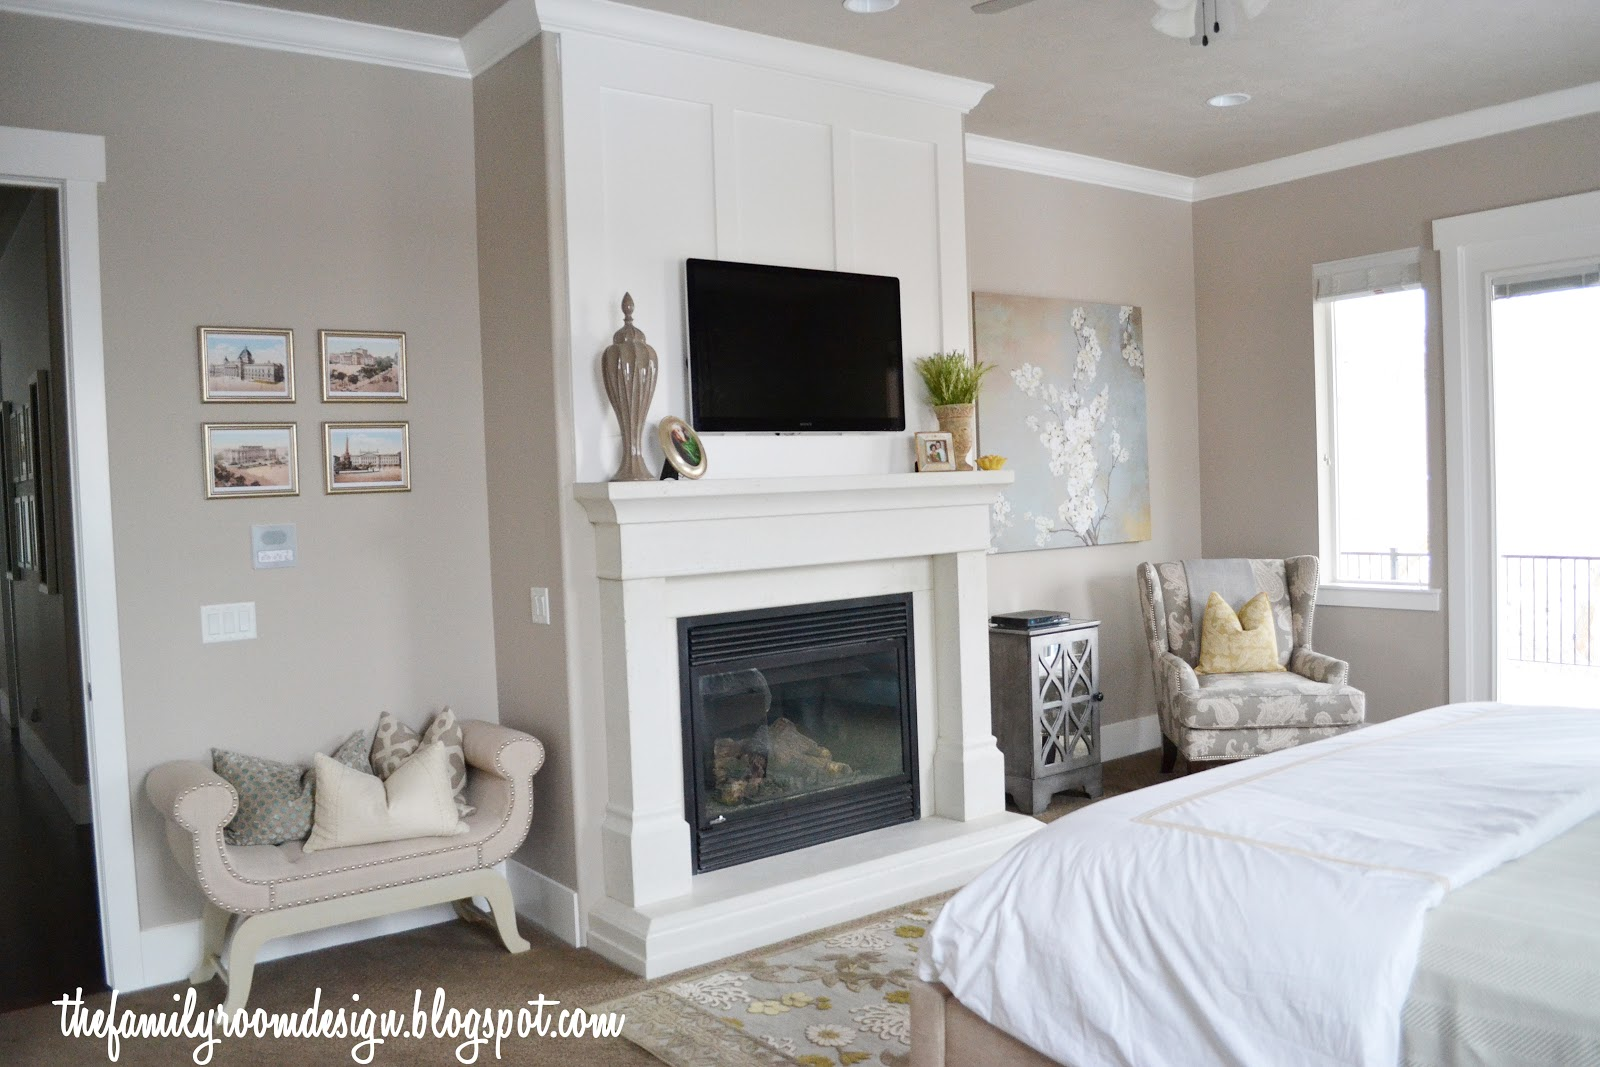 Sita Montgomery Interiors: Sita Montgomery Interiors: Master Bedroom Updates And A